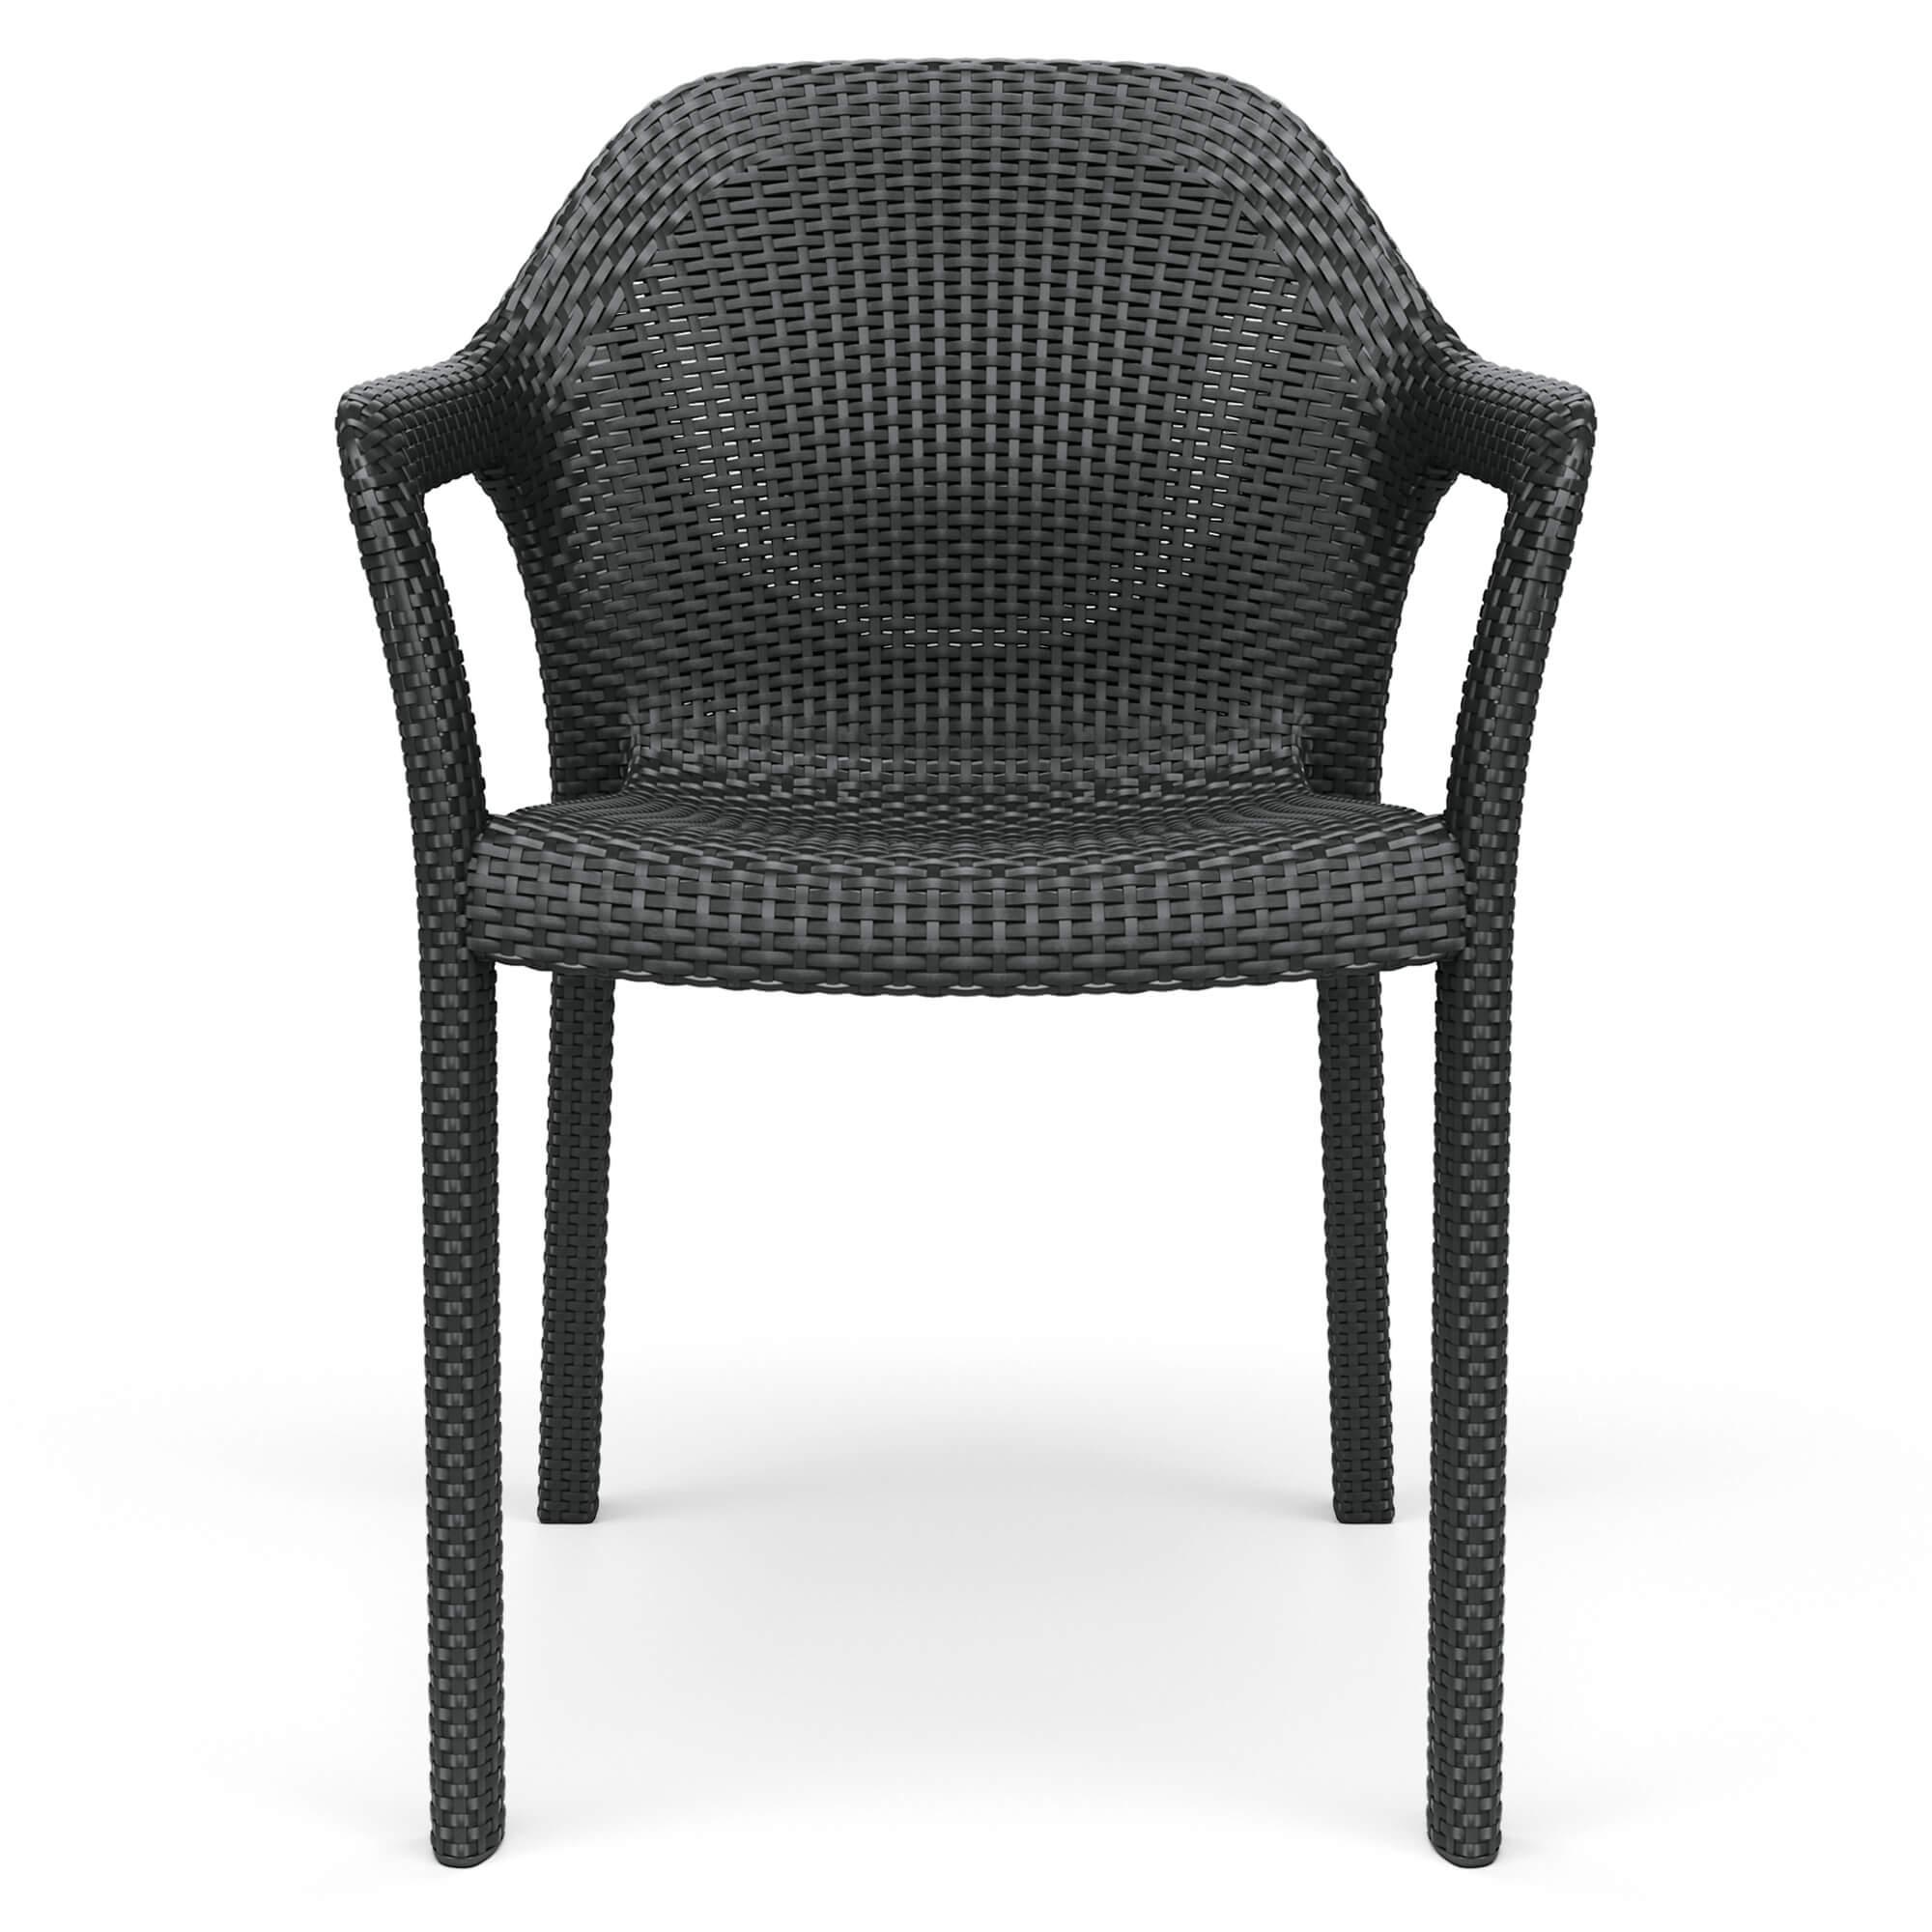 Chair mocha - Image 2